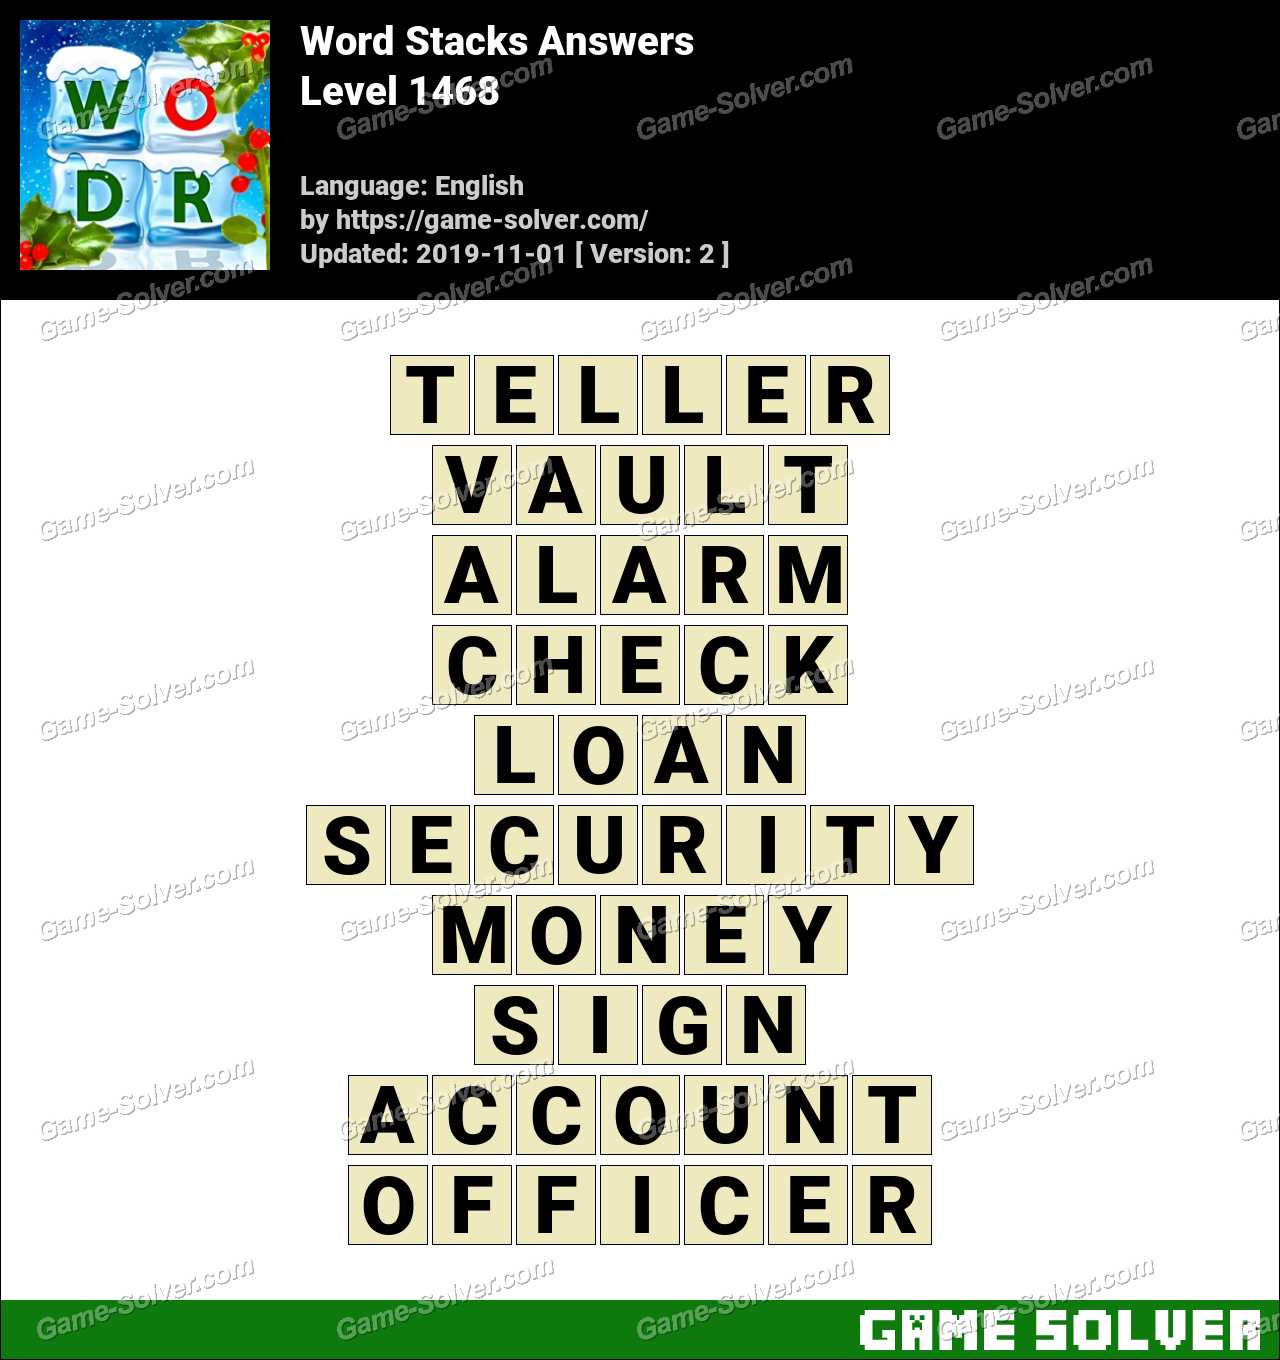 Word Stacks Level 1468 Answers